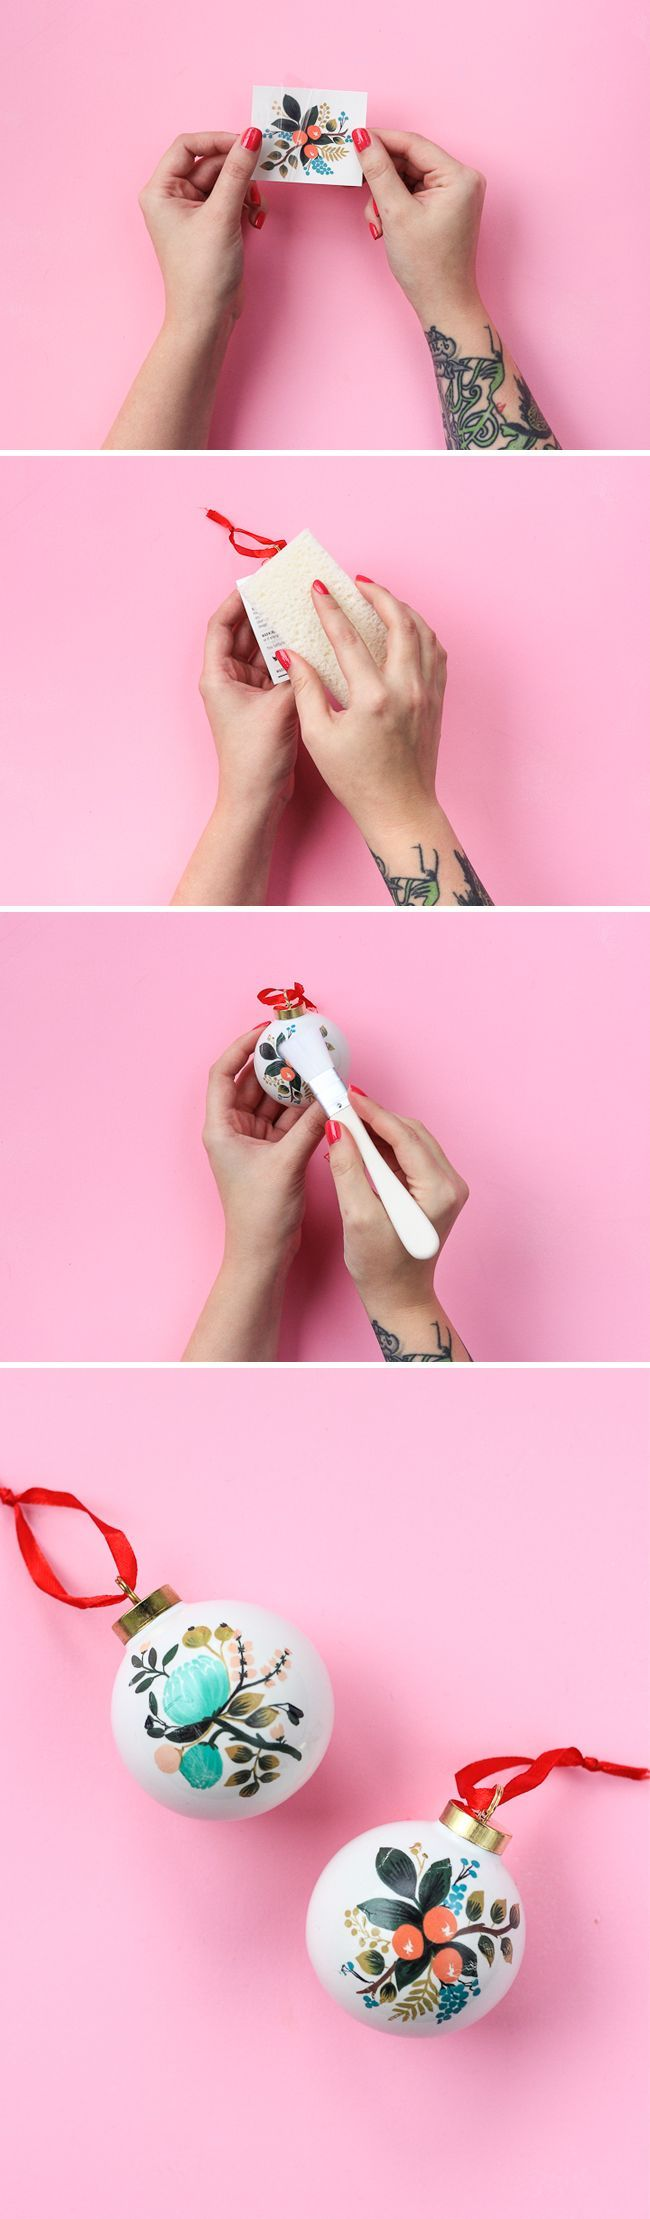 17 best ideas about temporary tattoos diy on pinterest for Temporary tattoo tracing paper